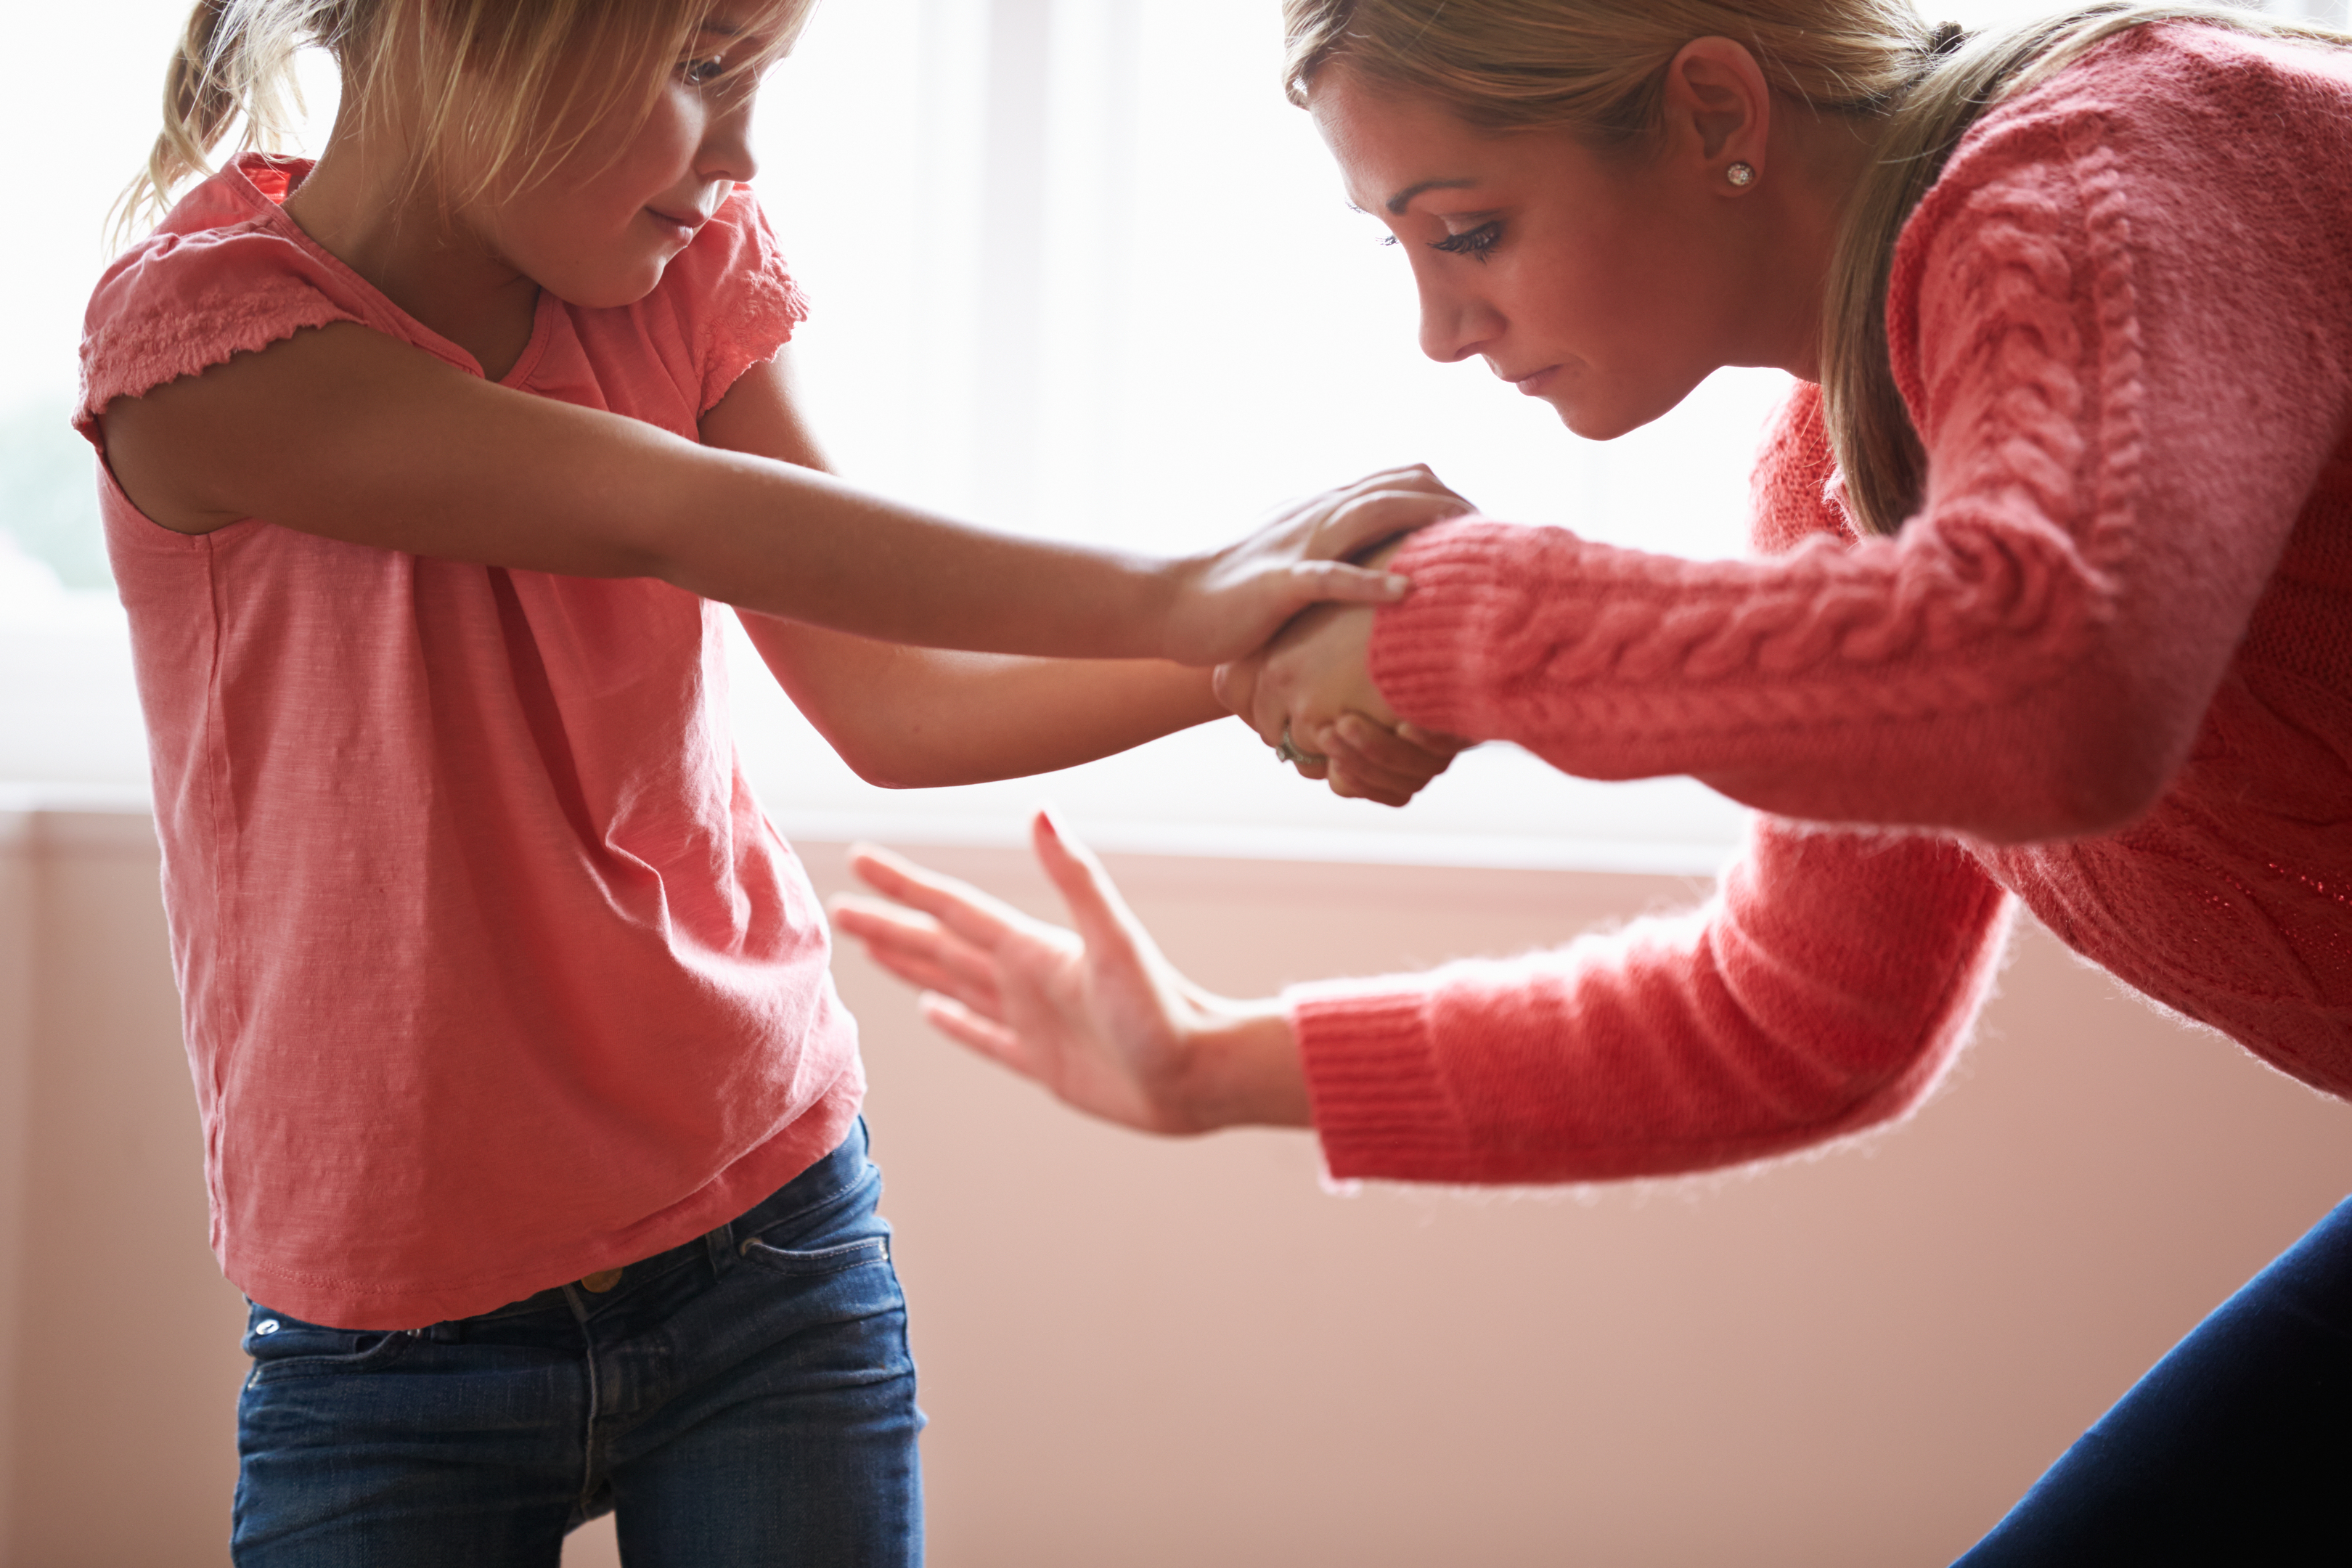 Scotland to become the first part of the UK to introduce a ban on smacking children (iStock)